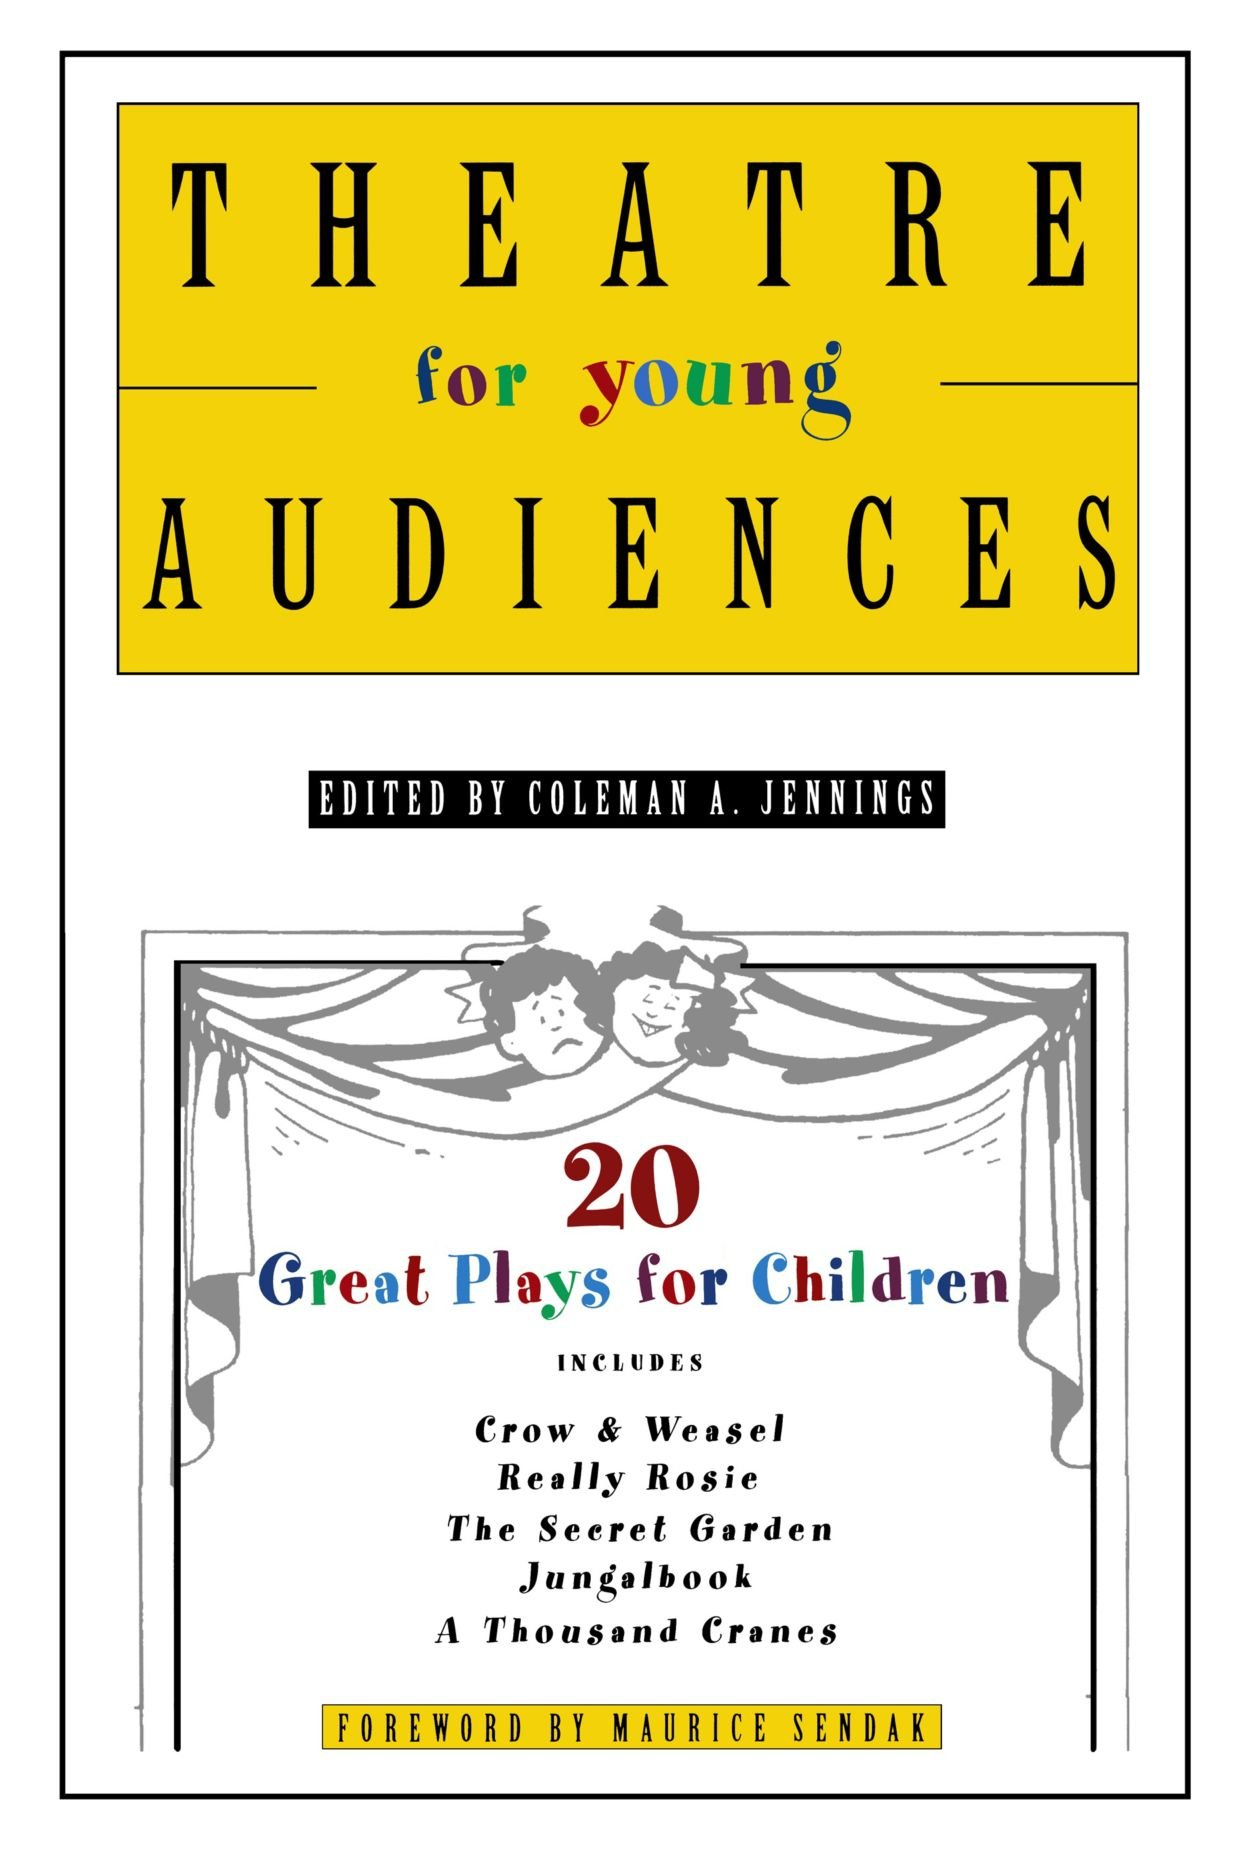 Image result for textbook of plays for kids""